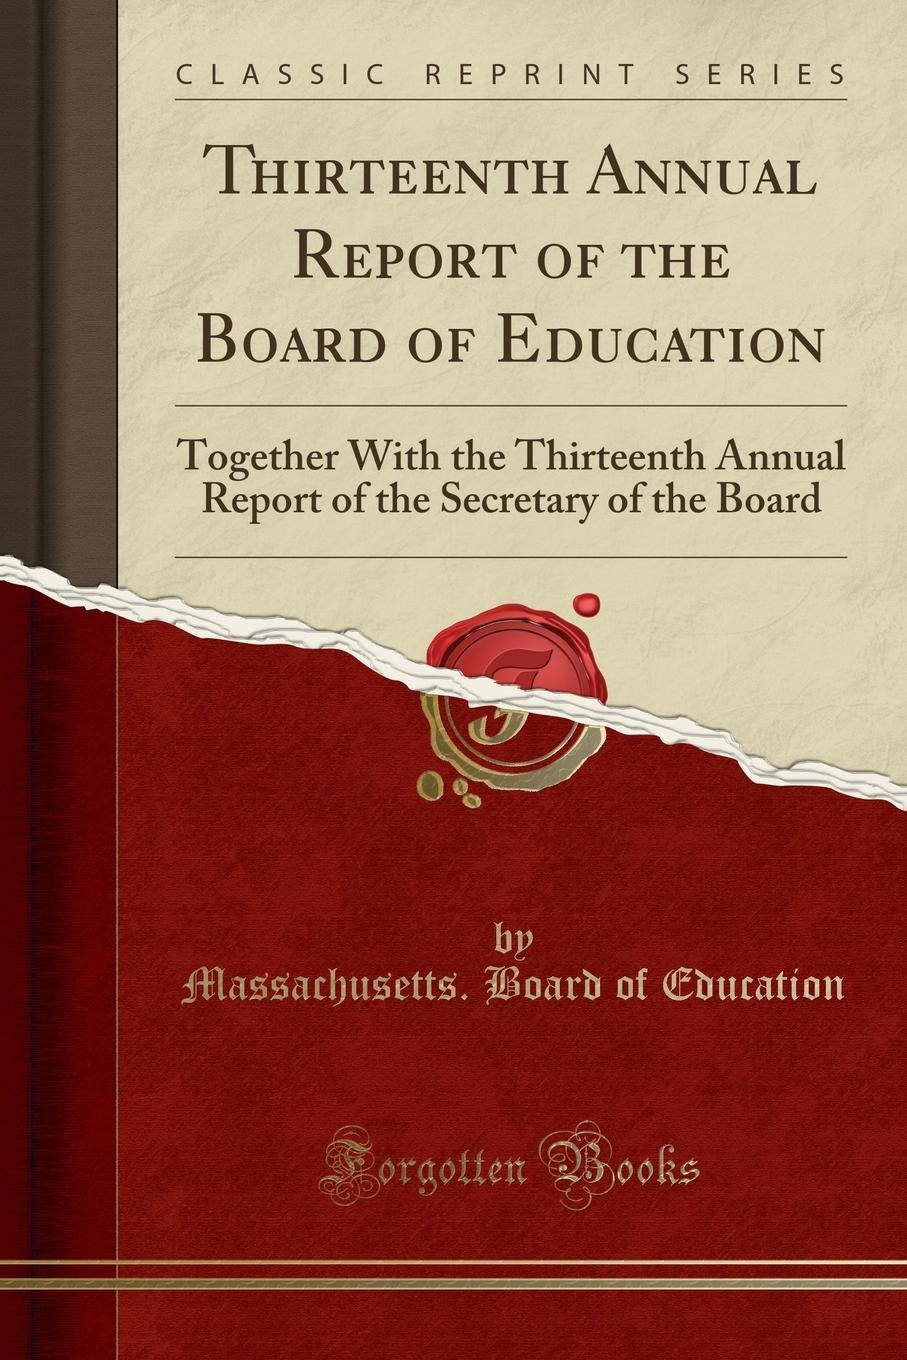 Thirteenth Annual Report of the Board of Education: Together With the Thirteenth Annual Report of the Secretary of the Board (Classic Reprint) pdf epub